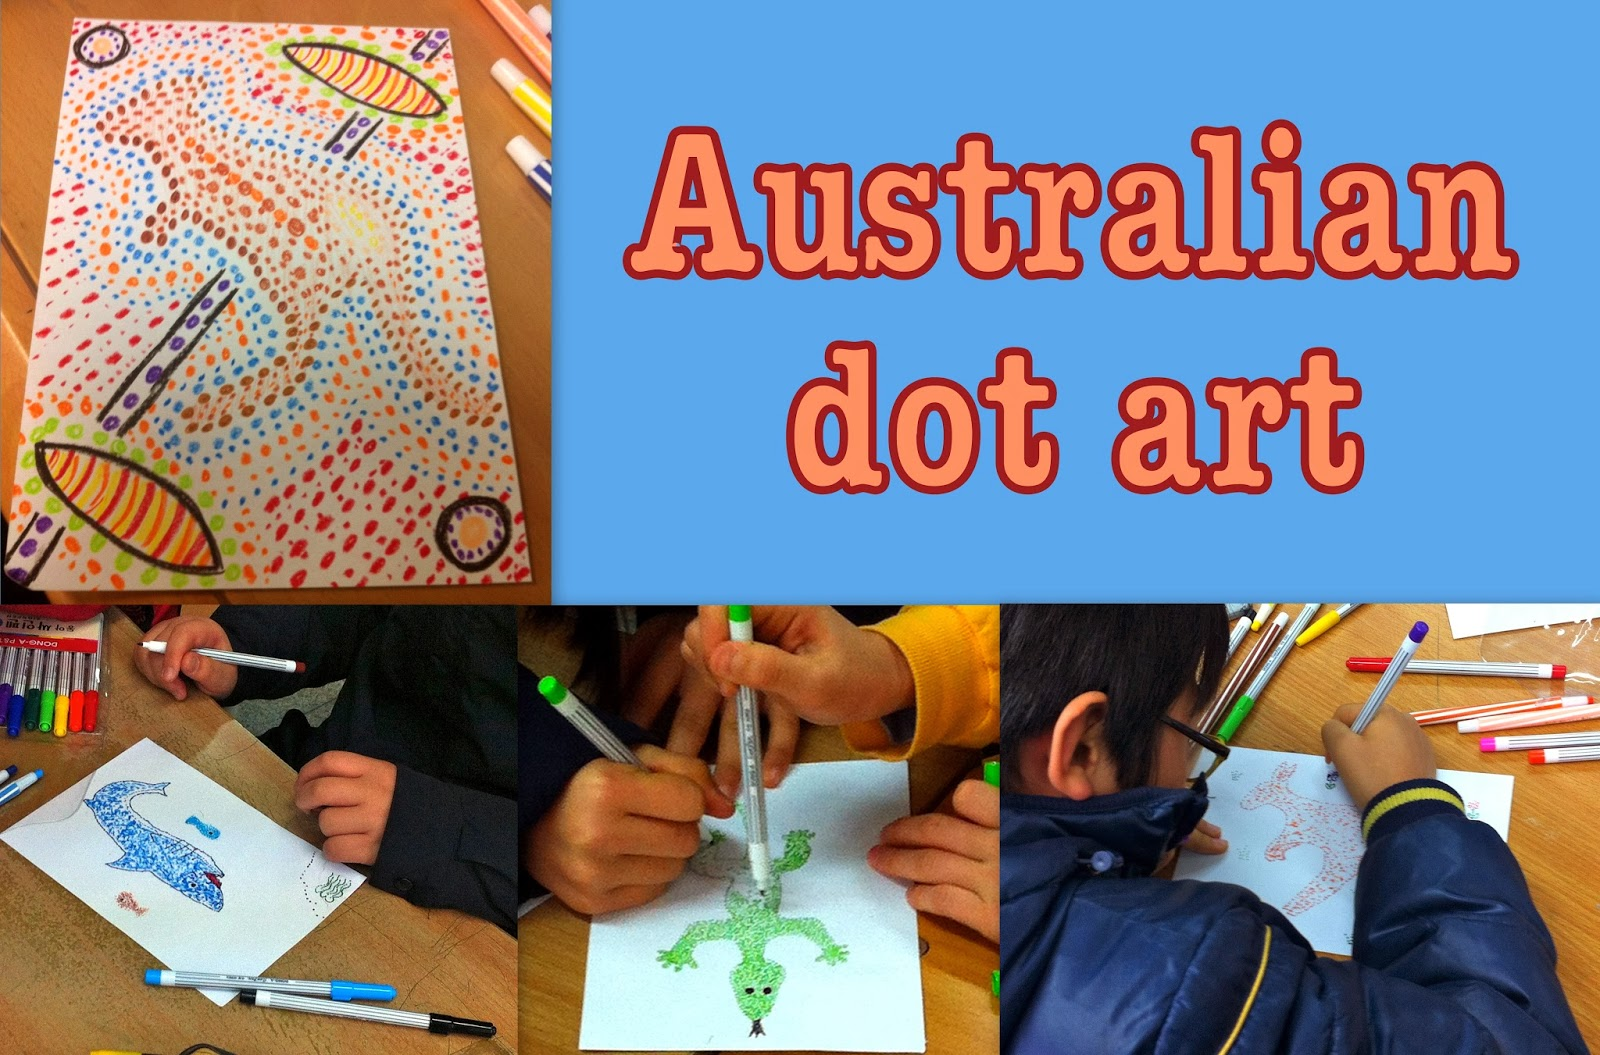 Australian dot art elementary art project